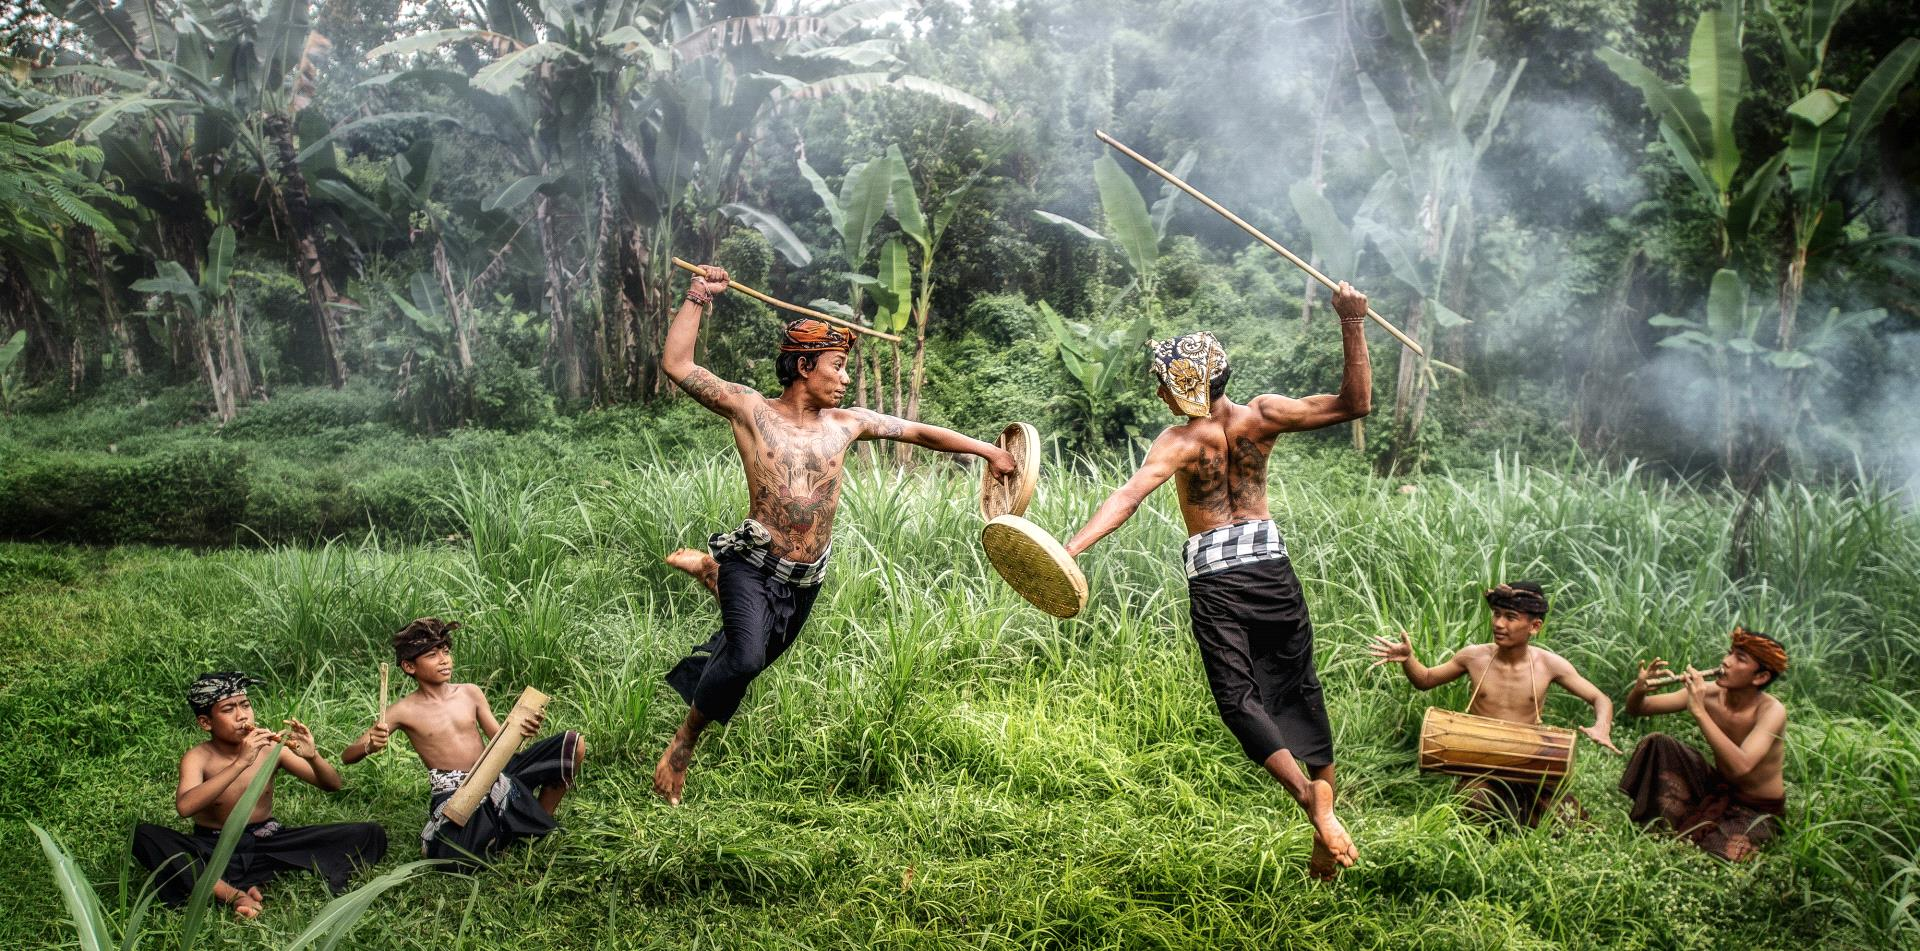 PhotoVivo Honor Mention - Sze-Wah Chee (Singapore)  Klung Klung Fighters